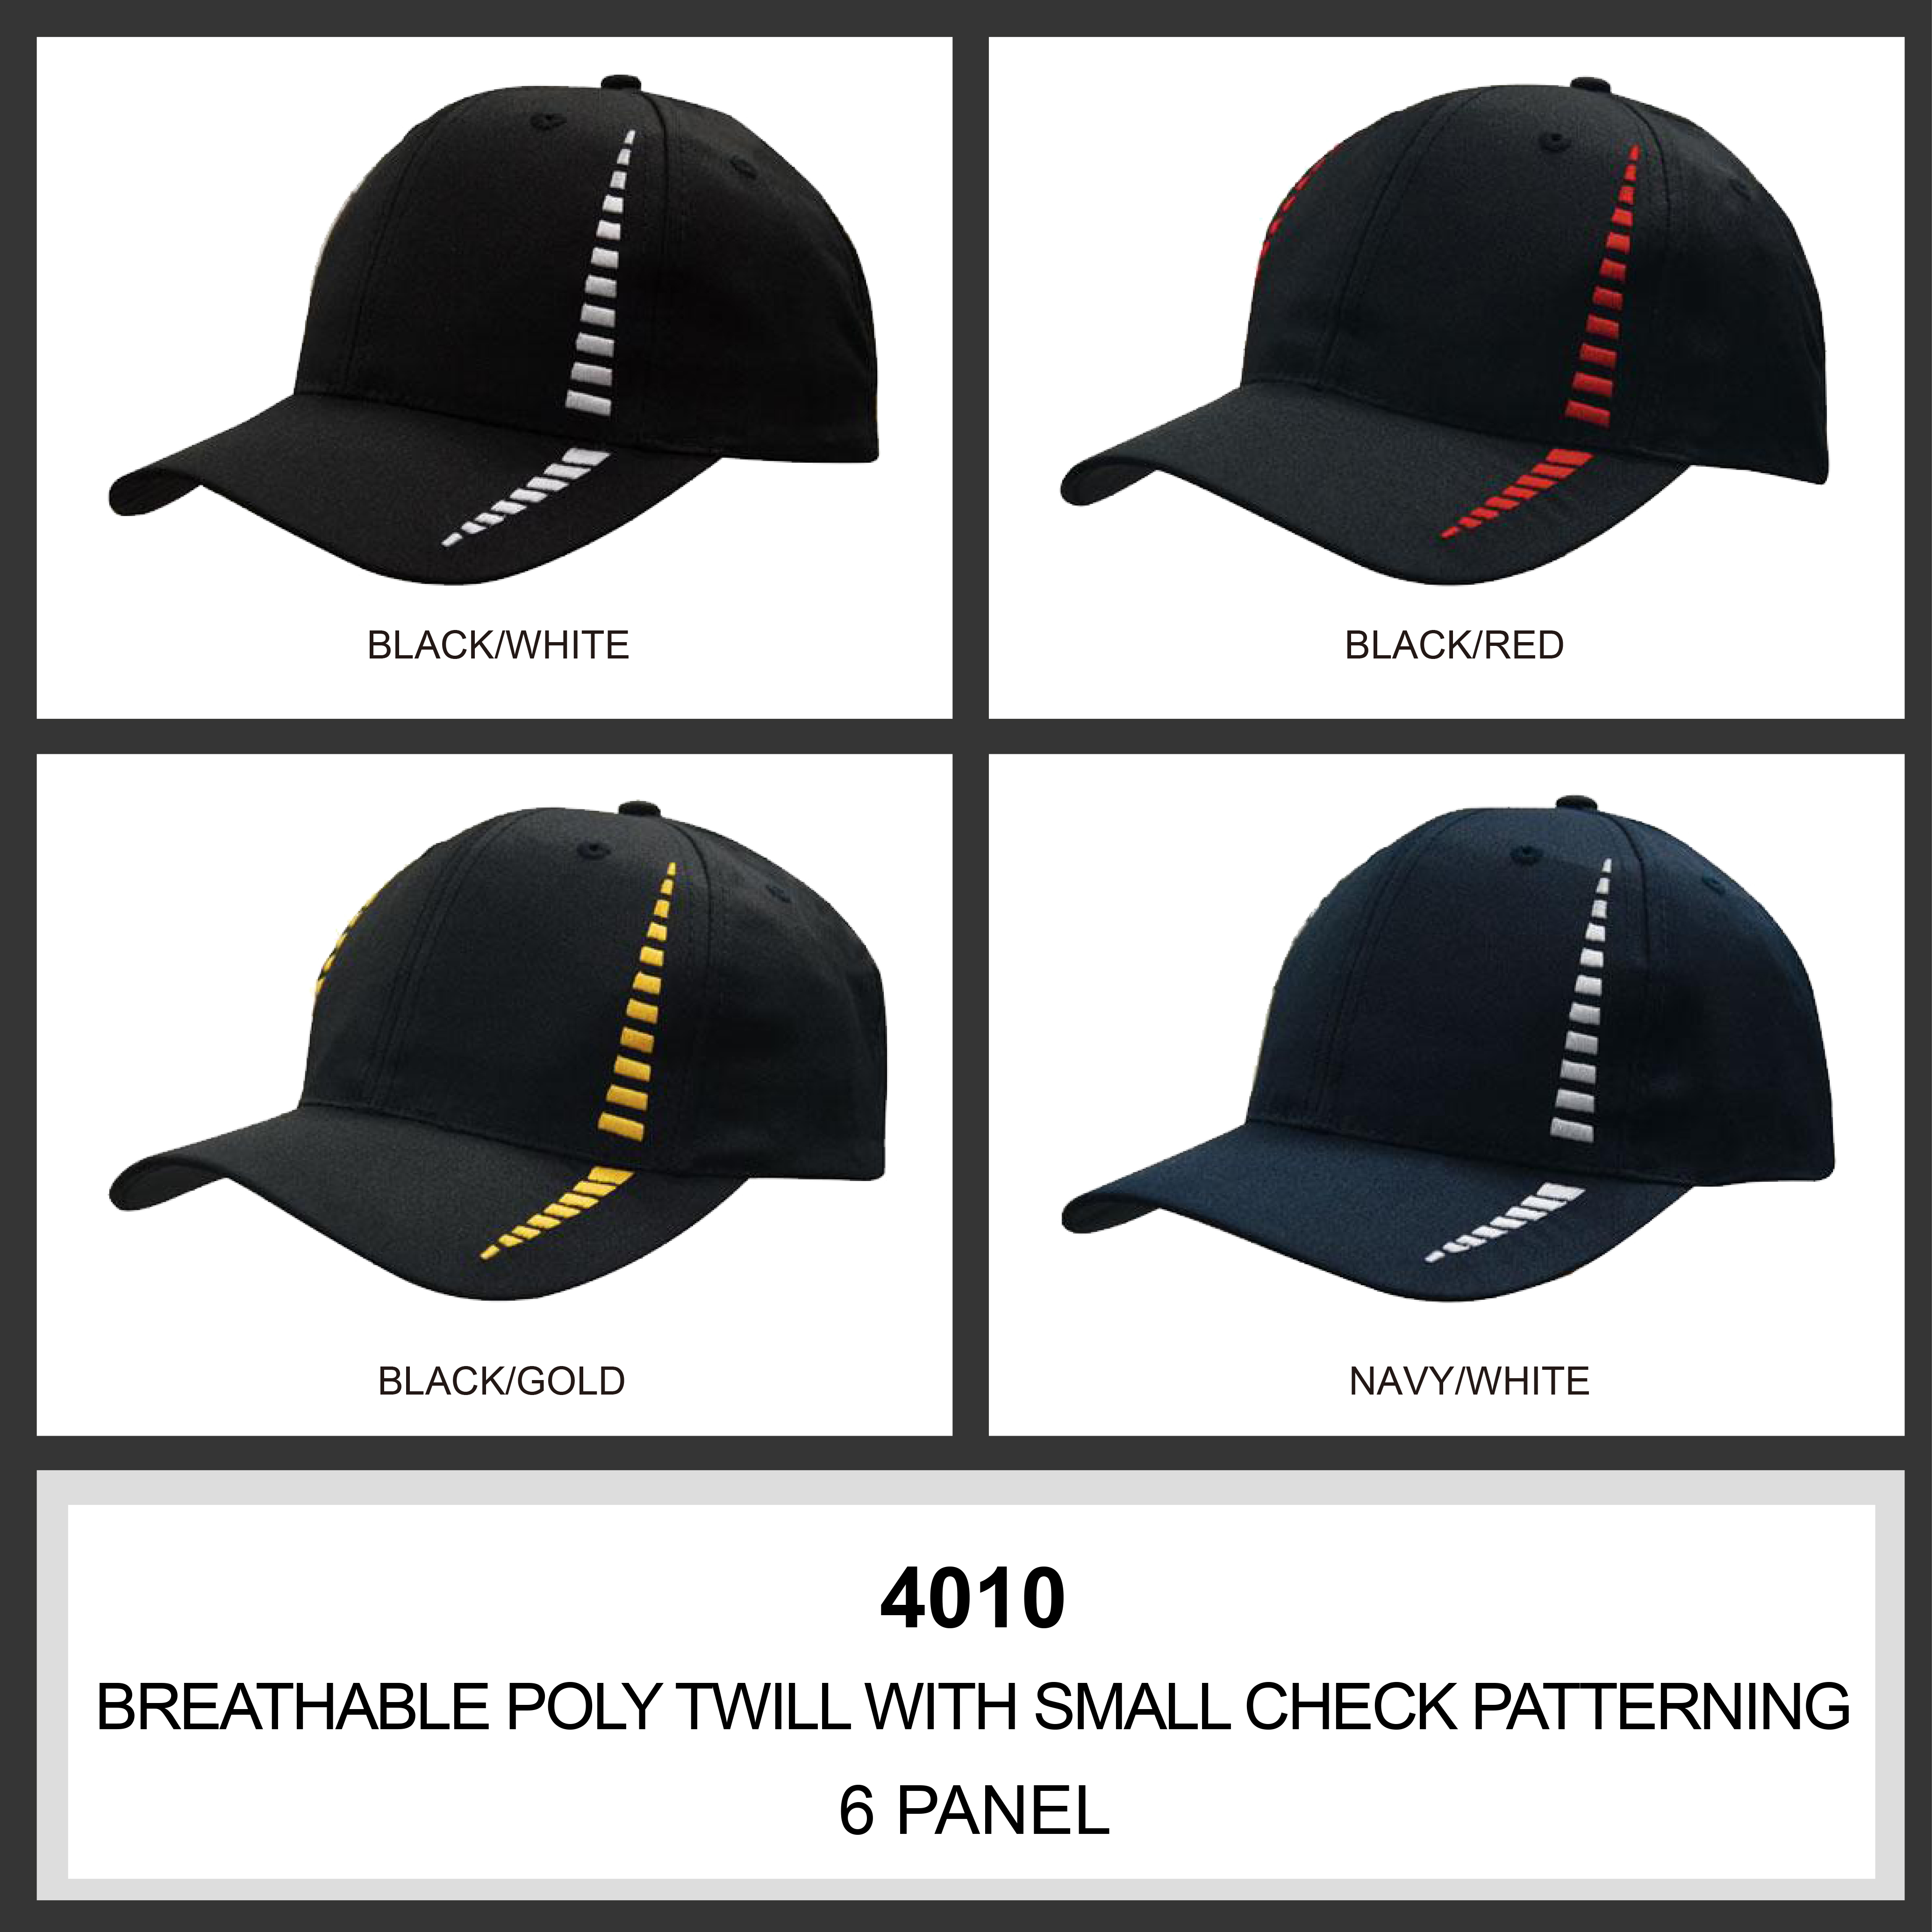 Breathable Poly Twill with Small Check Patterning (4010) 2 | | Promotion Wear